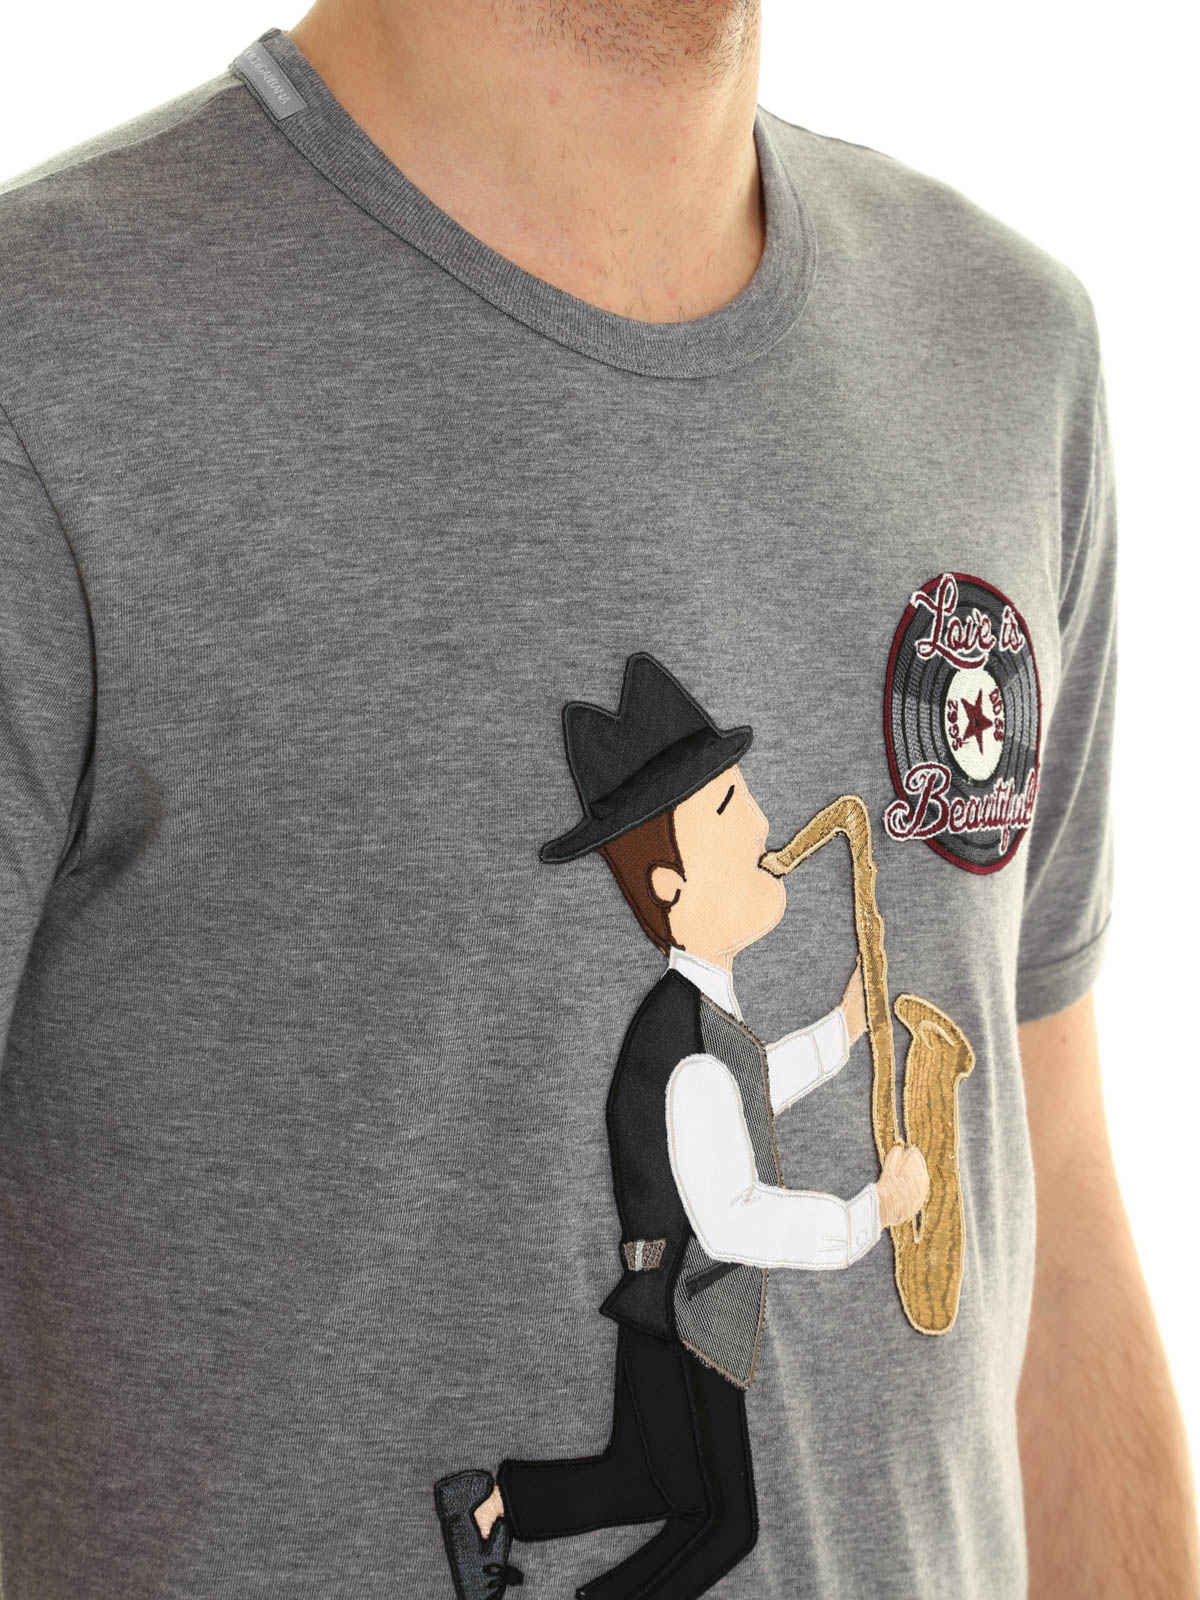 Saxophonist embroidery t shirt by dolce gabbana